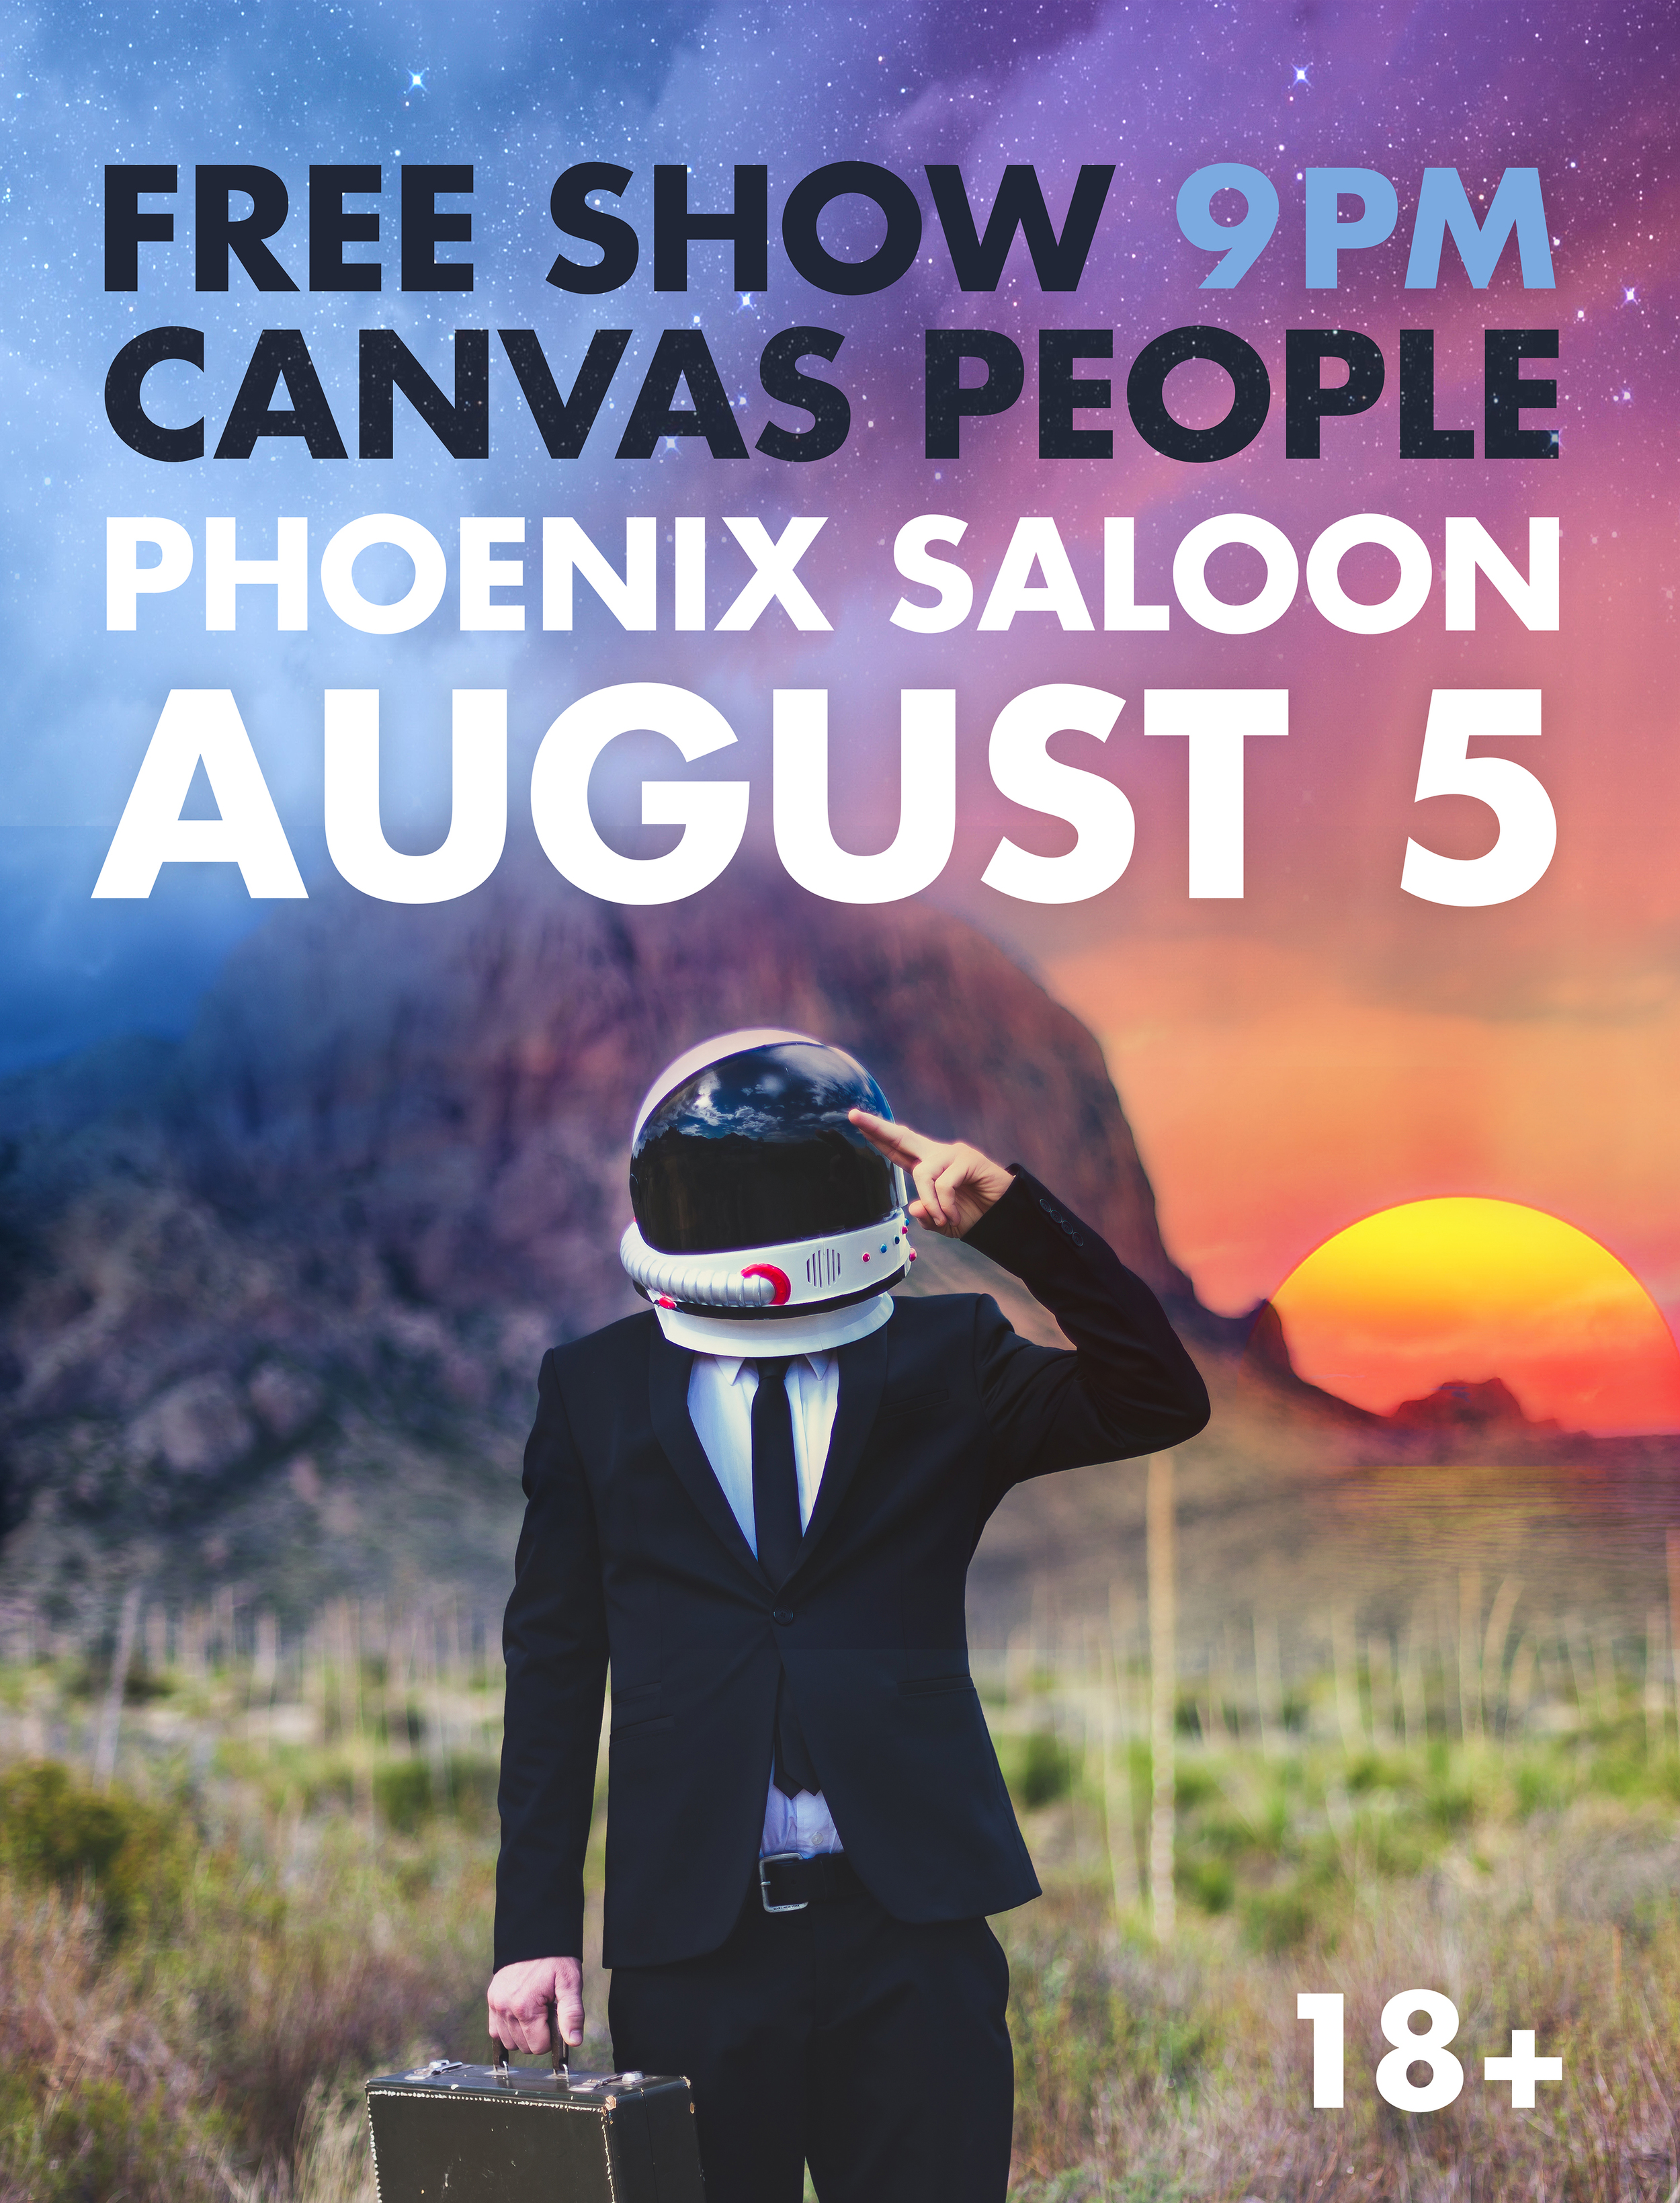 Canvas People Pheonix Saloon New Poster 4_portfolio.jpg